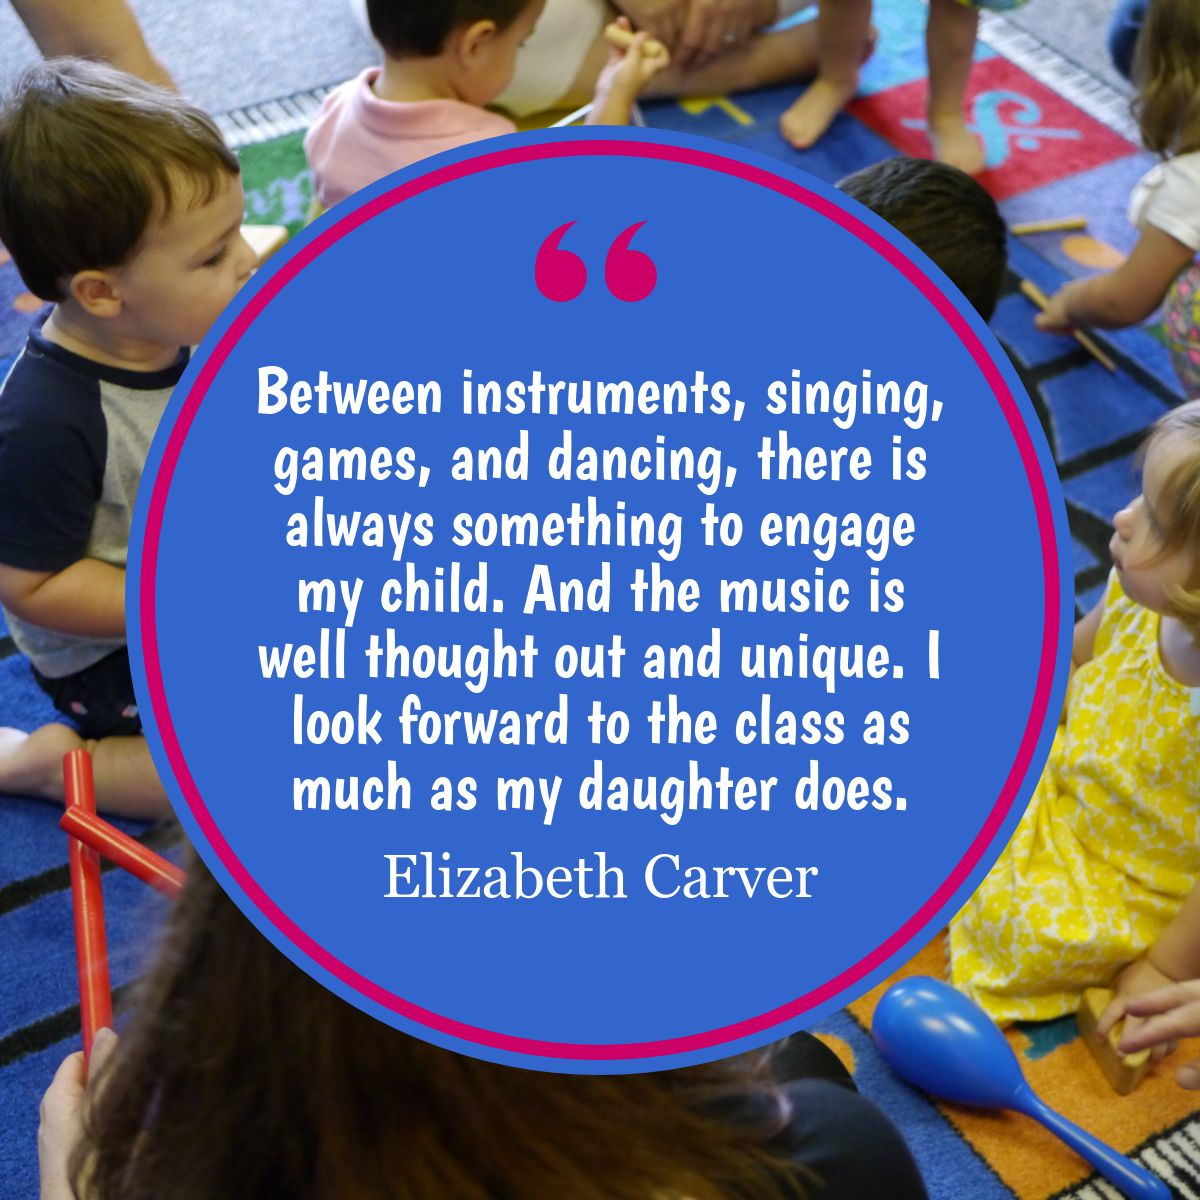 Between instruments, singing, games, and dancing, there is always something to engage my child. And the music is well thought out and unique. I look forward to the class as much as my daugher does.